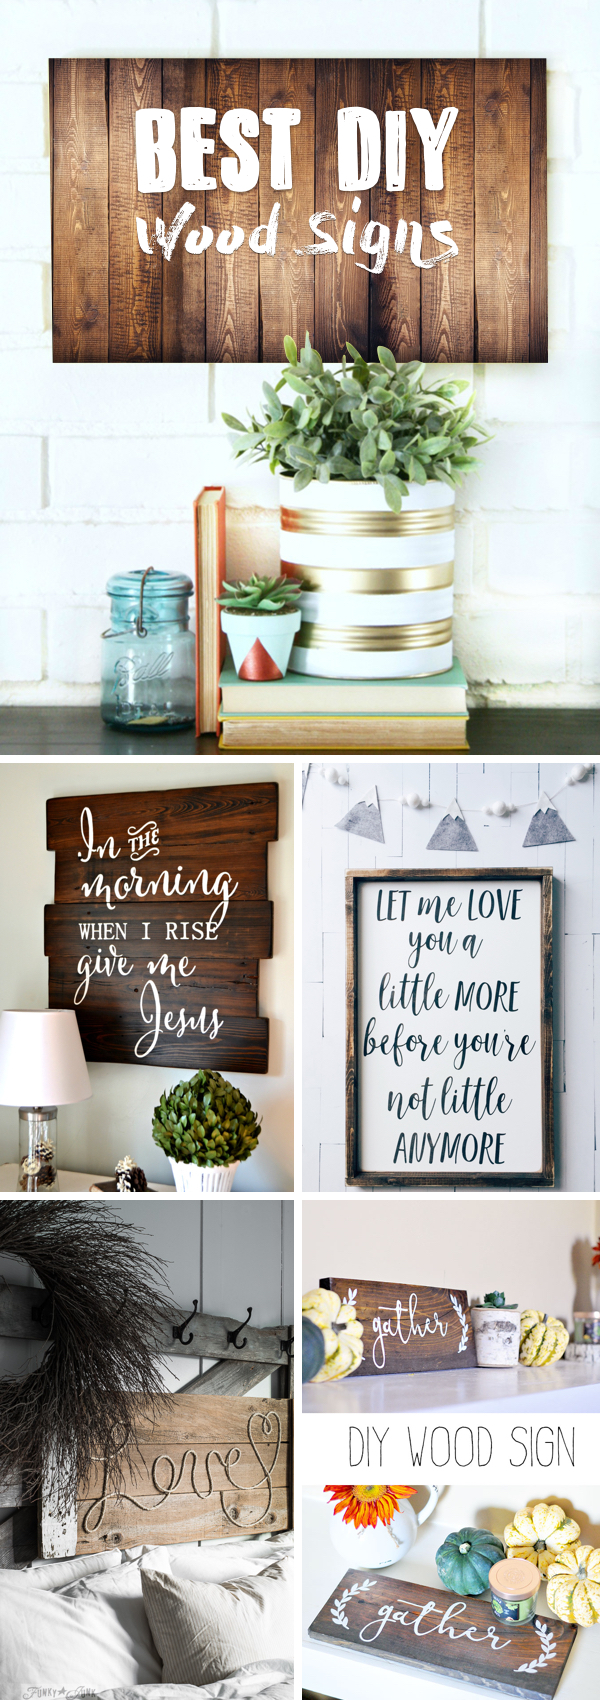 25 Diy Wood Signs Showcasing Your Designs With Rusticness At Its Best